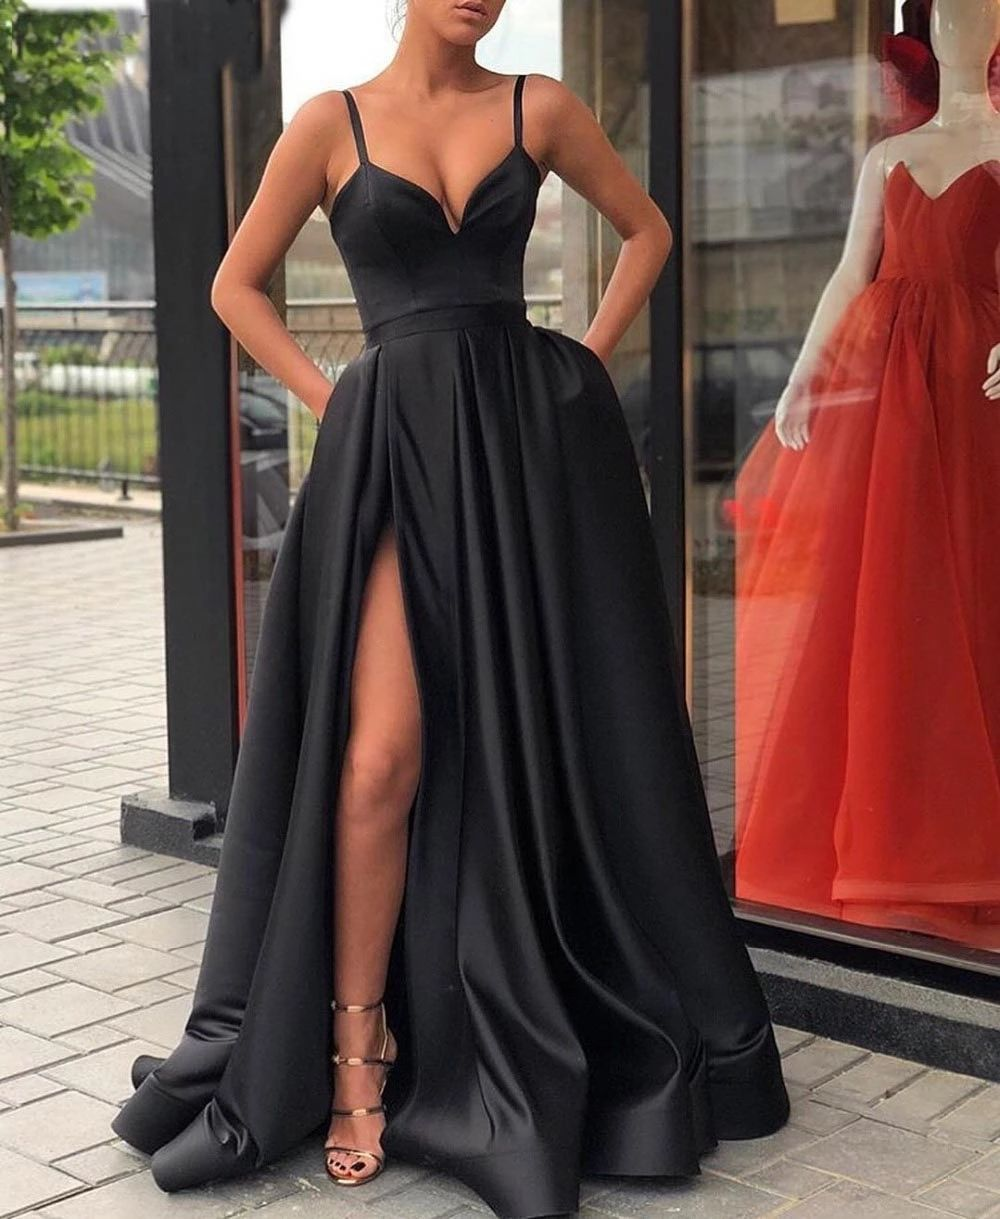 Sexy A-Line Sleeveless Straps Satin Evening Dress with Pocket from MychicDress